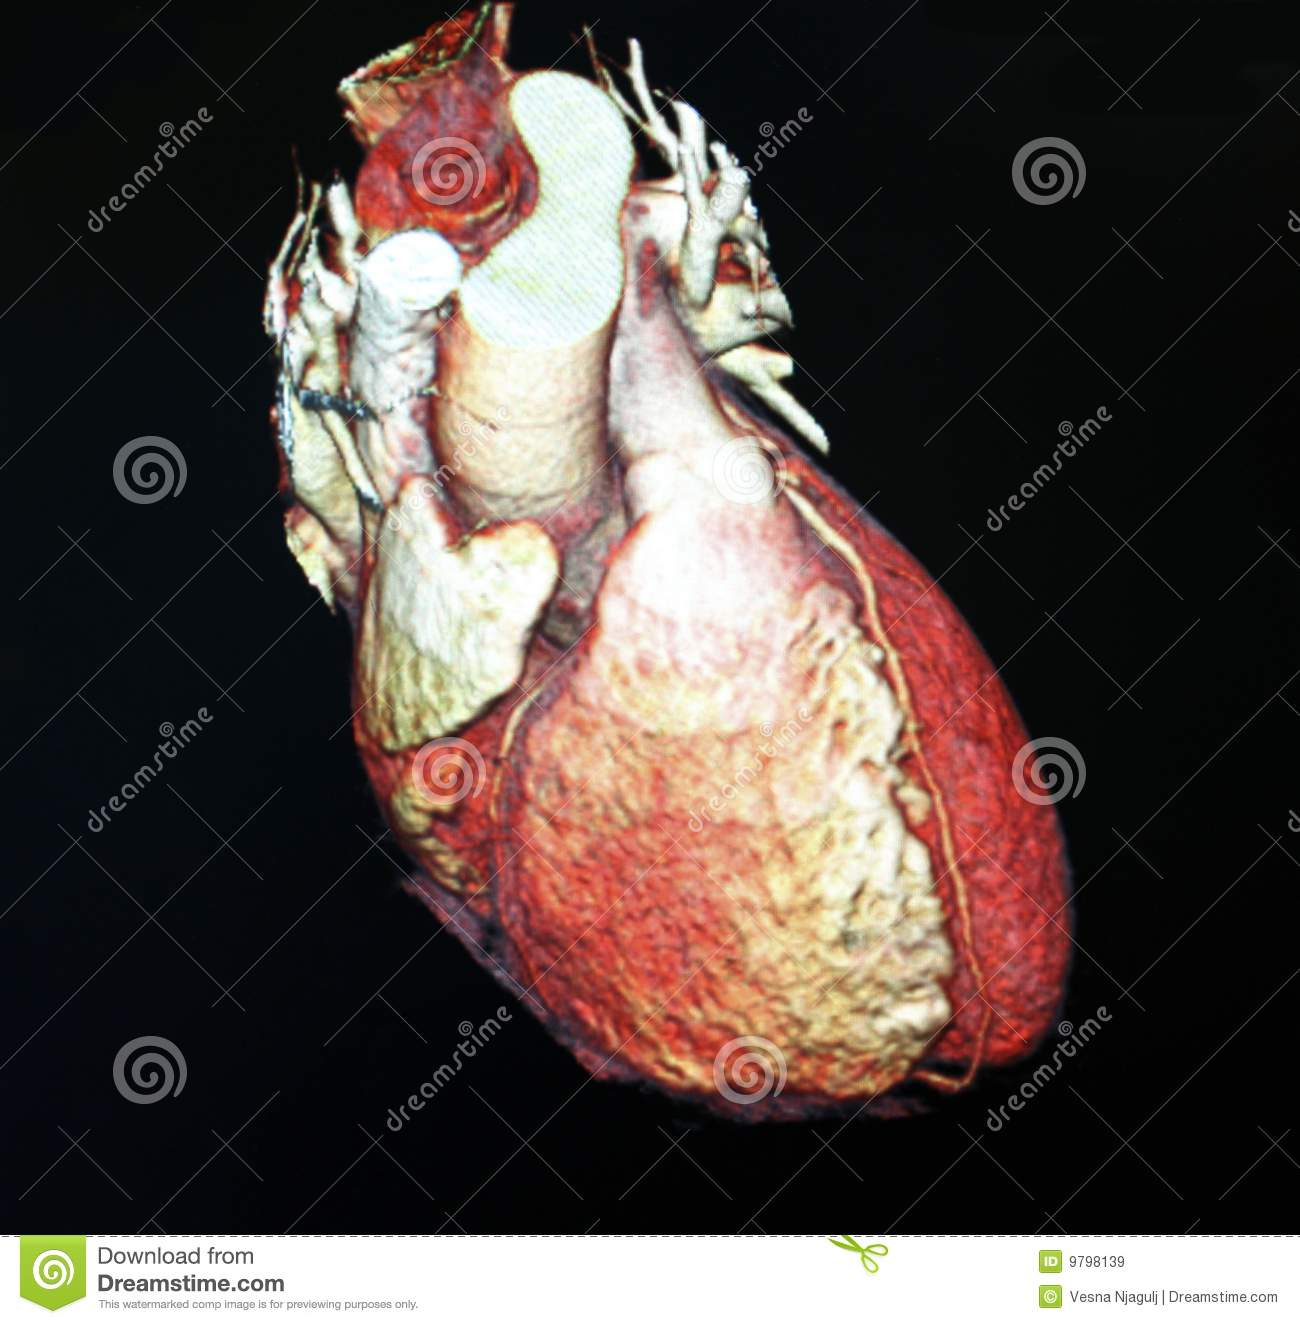 Heart Computed Tomography